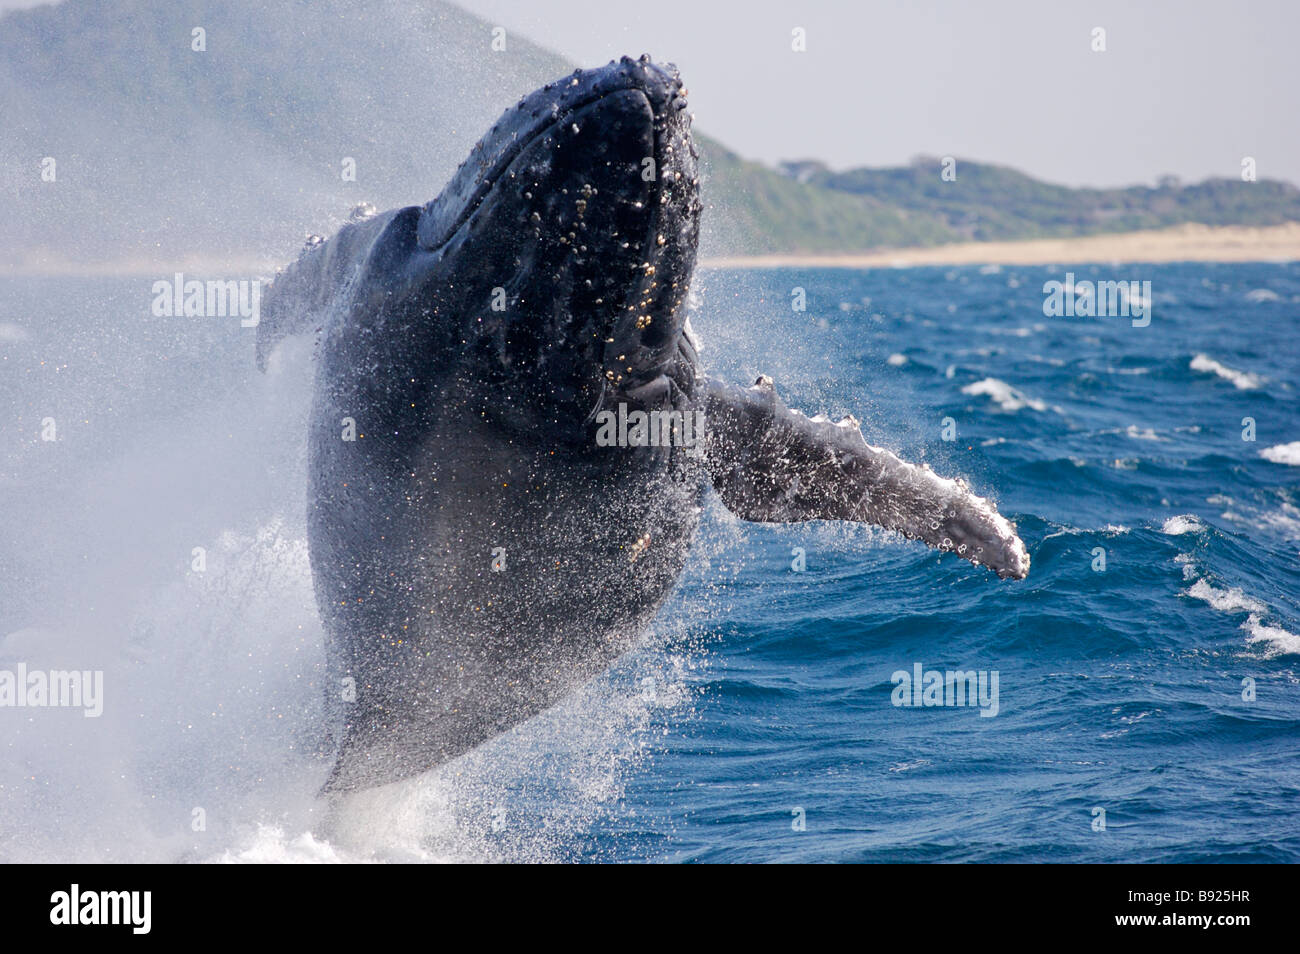 Humpbacked whale breaching St Lucia KwaZulu Natal Province South Africa - Stock Image